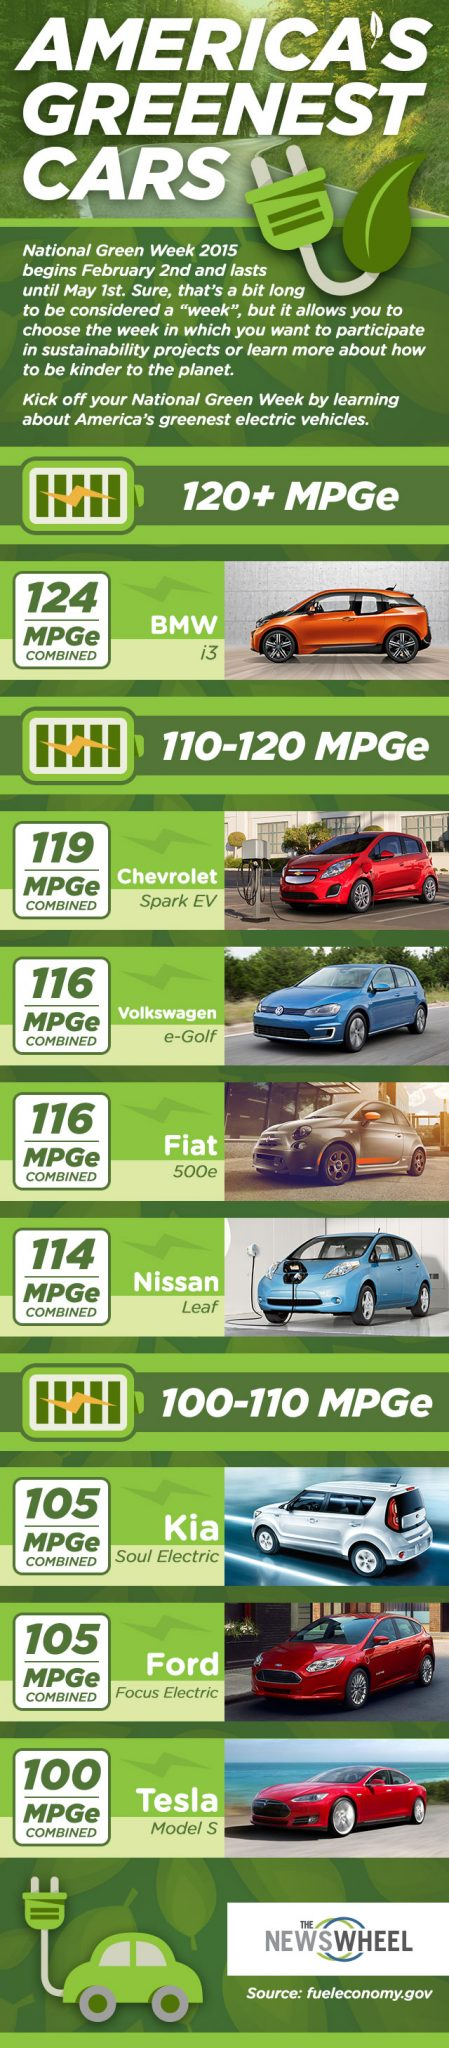 America's greenest cars infographic